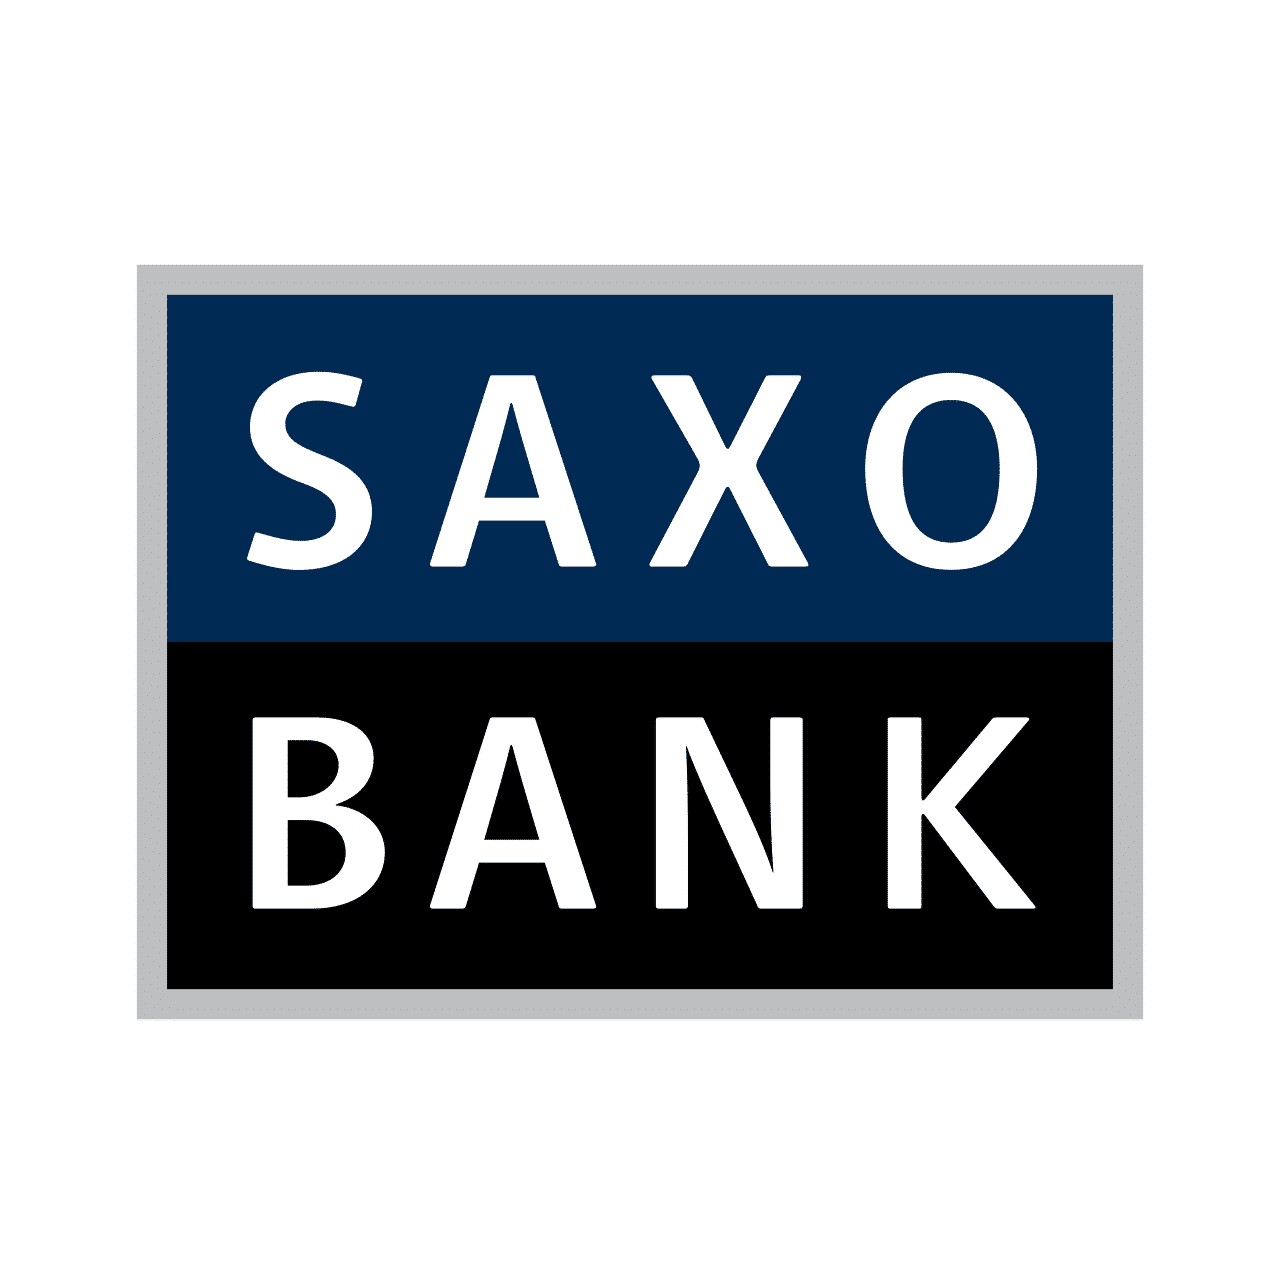 Saxo Bank Launches 21 New Stock and ETF Options